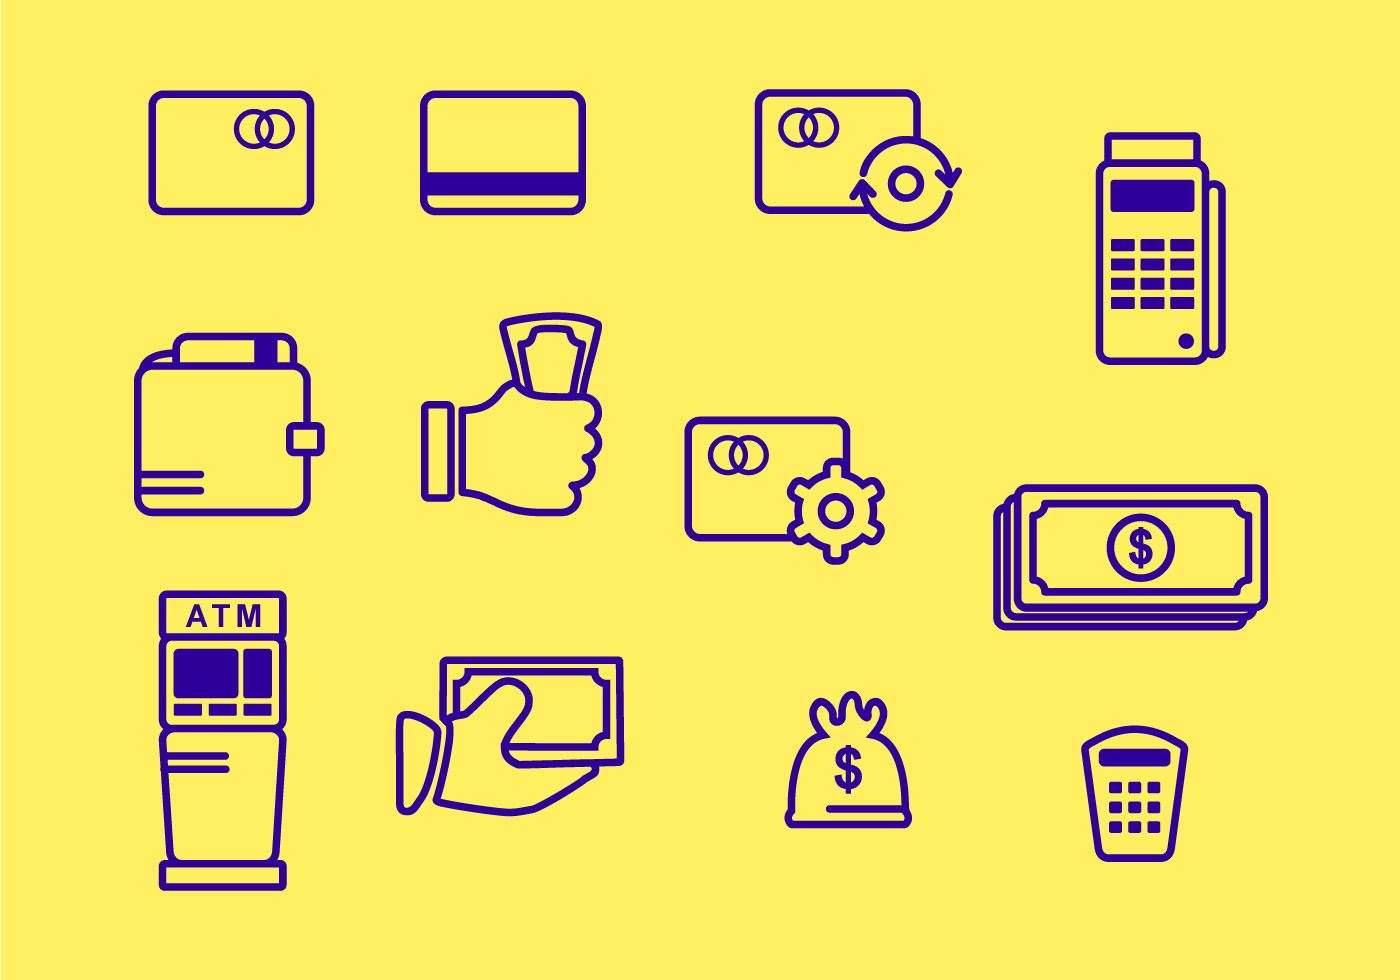 Card Reader Icons Download Free Vector Art Stock